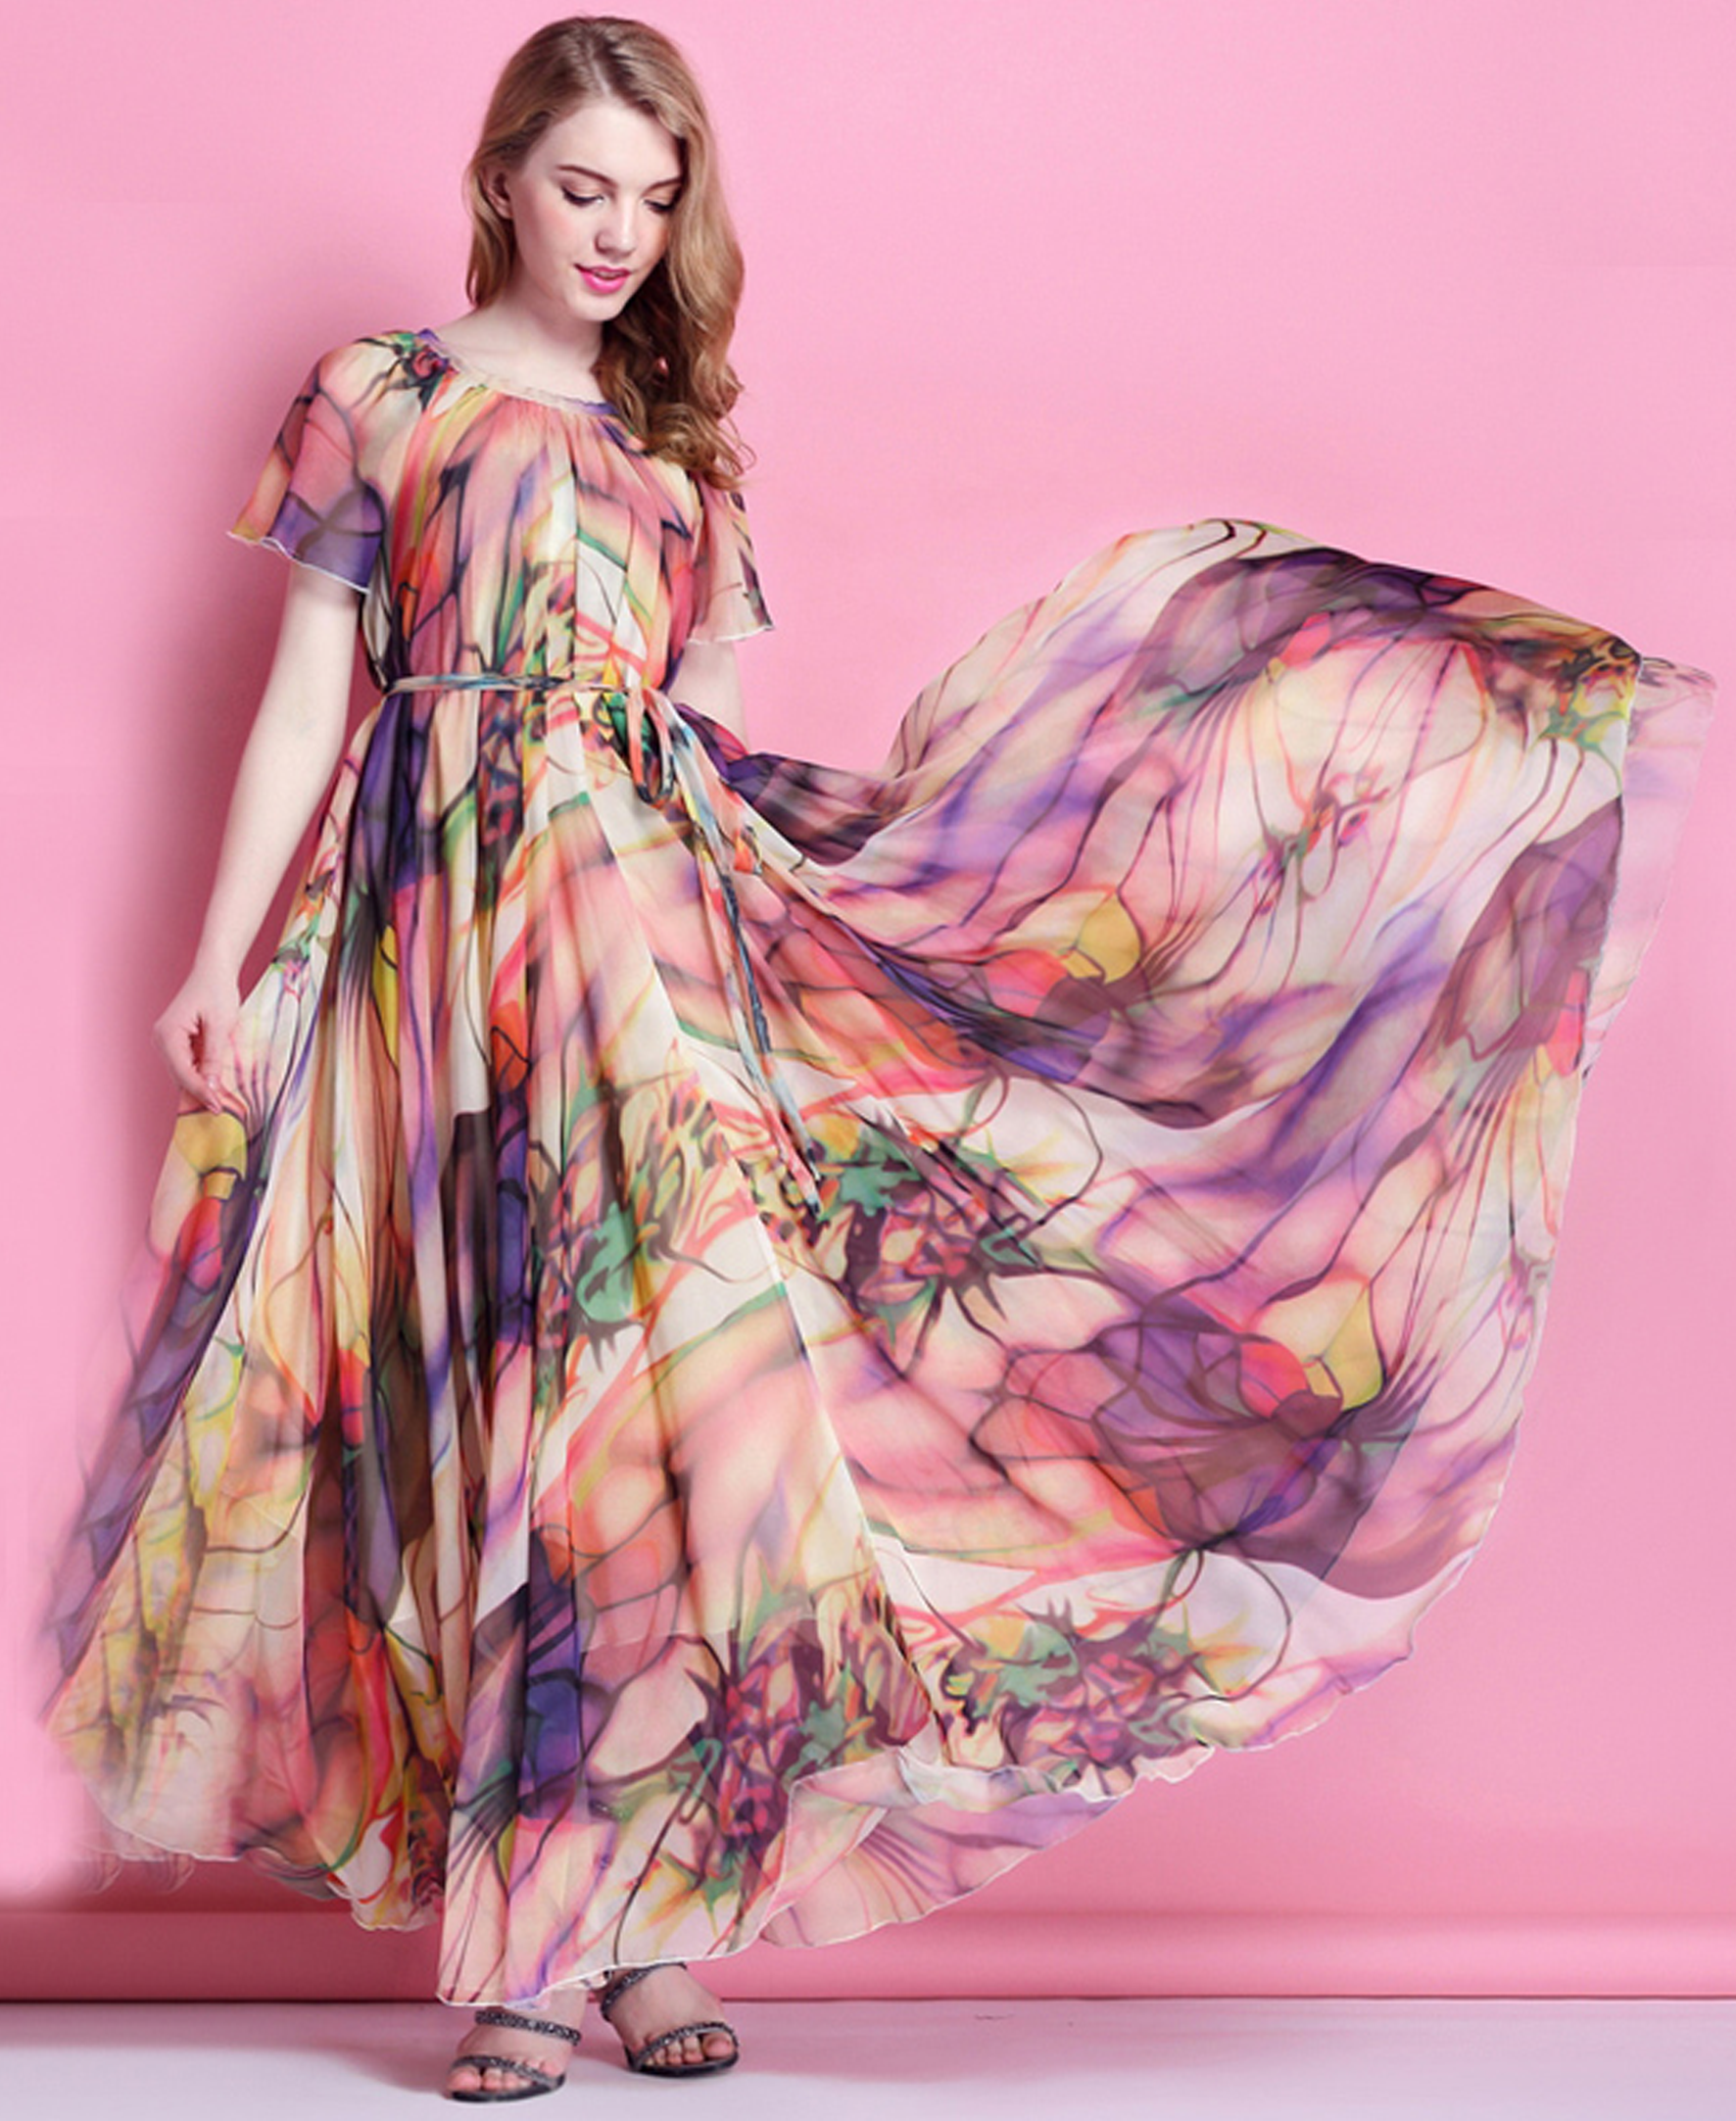 5b85b82cd25ba 2015 Summer Chiffon Floral Long Beach Maxi Dress Lightweight Sundress Plus  Size Bridesmaid Dress Hol on Luulla